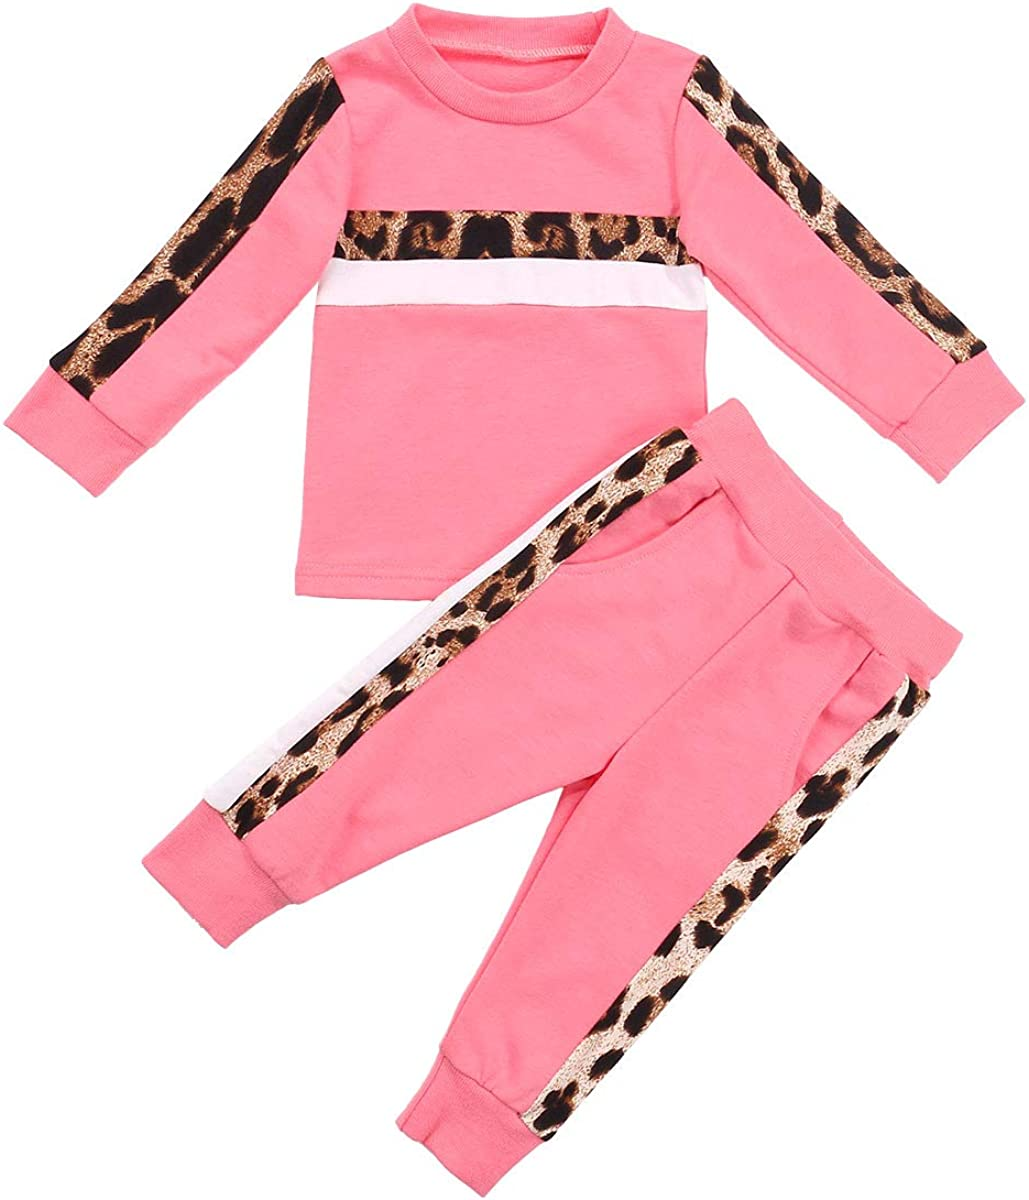 Cocoday Toddler Baby Boy Girl Leopard Clothes Long Sleeve Solid Sweatshit Pullover Top + Leggings Pant Fall Winter Outfits